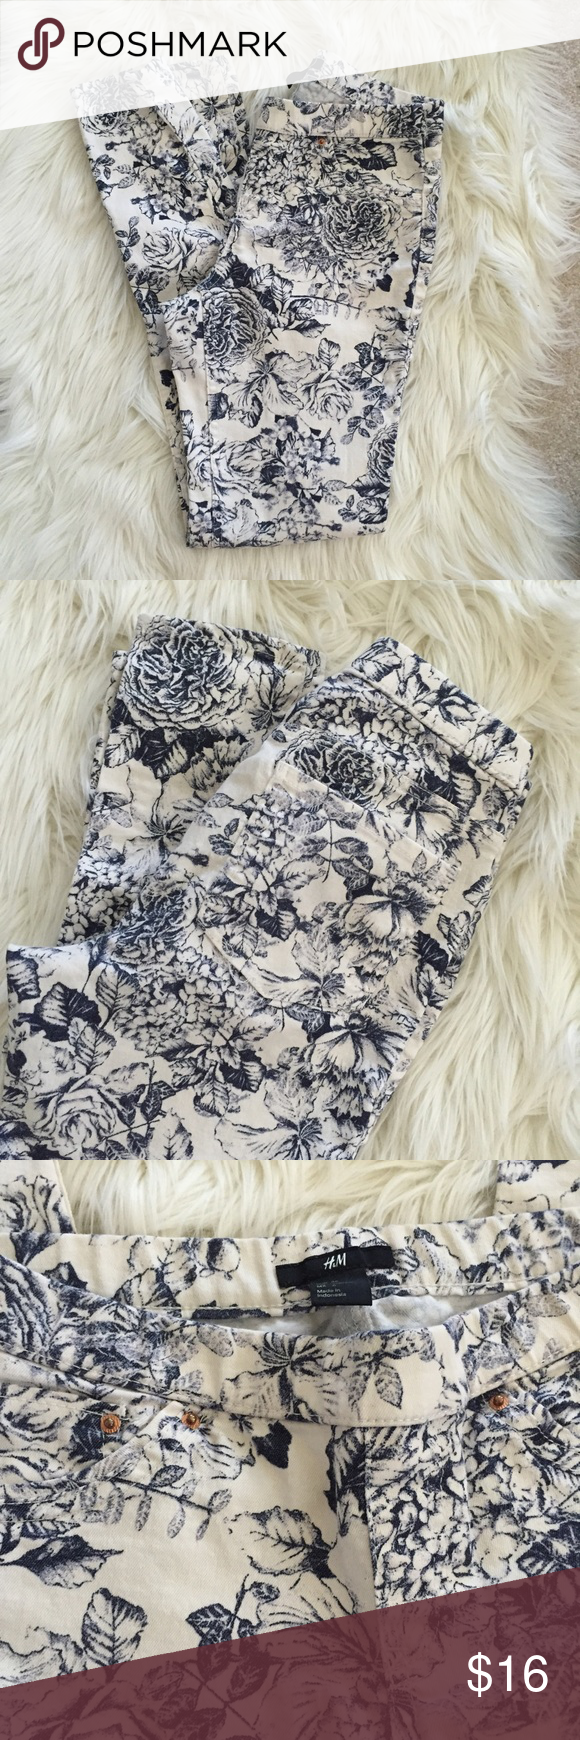 H&M Jeggings Adorable H&M floral navy blue and cream skinny jeggings in size 6. NOT ANTHROPOLOGIE -- just for visibility 😍 so cute and comfortable. Hope you enjoy! Anthropologie Jeans Skinny